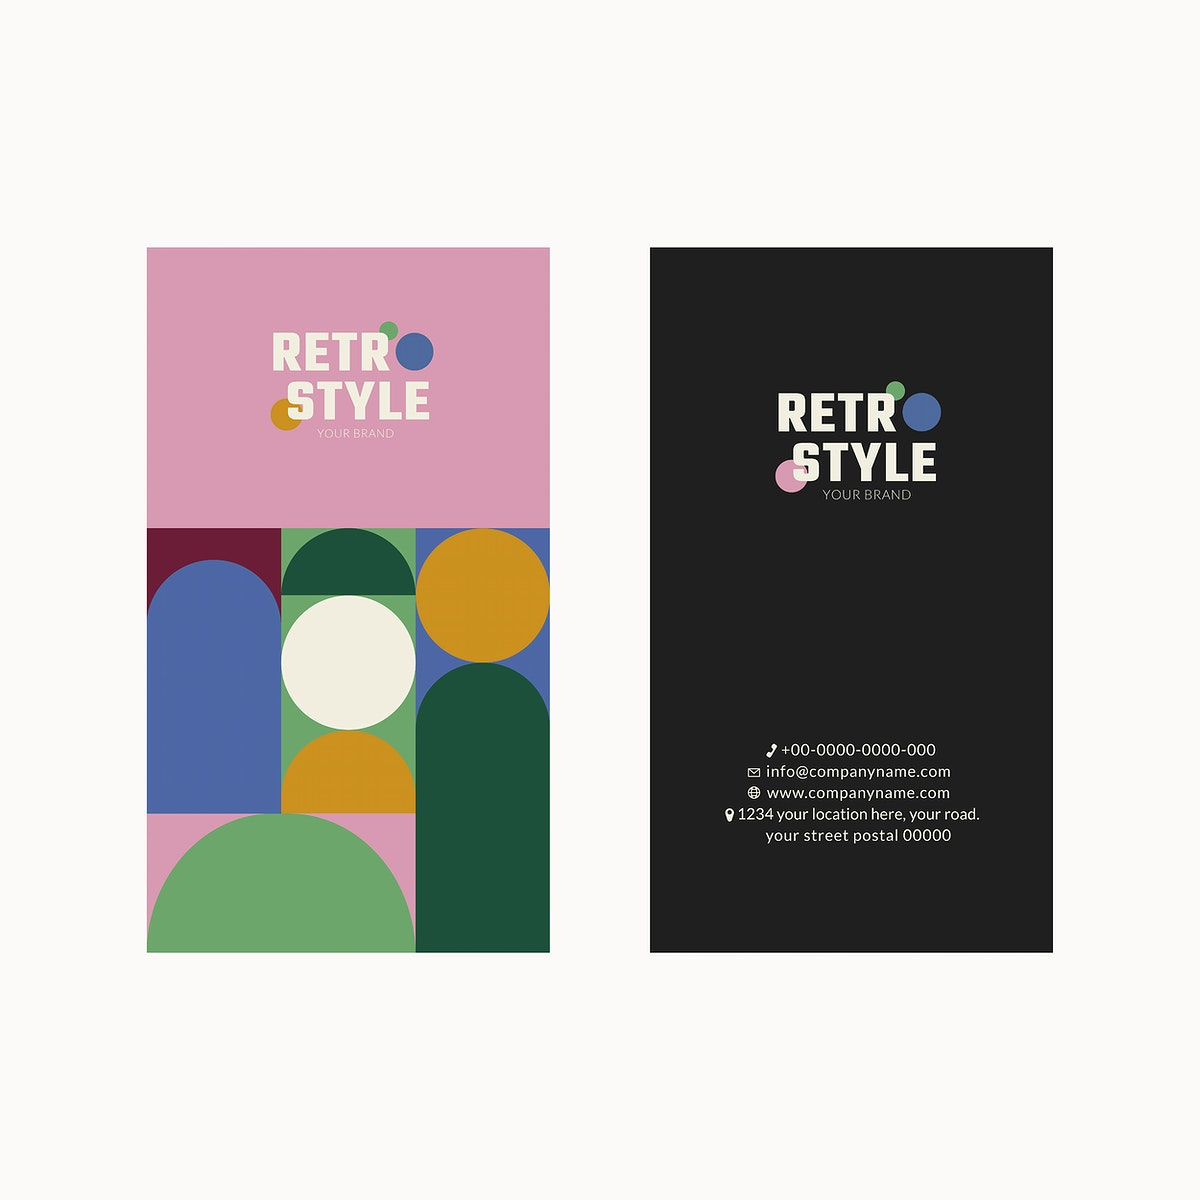 Editable business card template psd in pink retro style for fashion and beauty brands